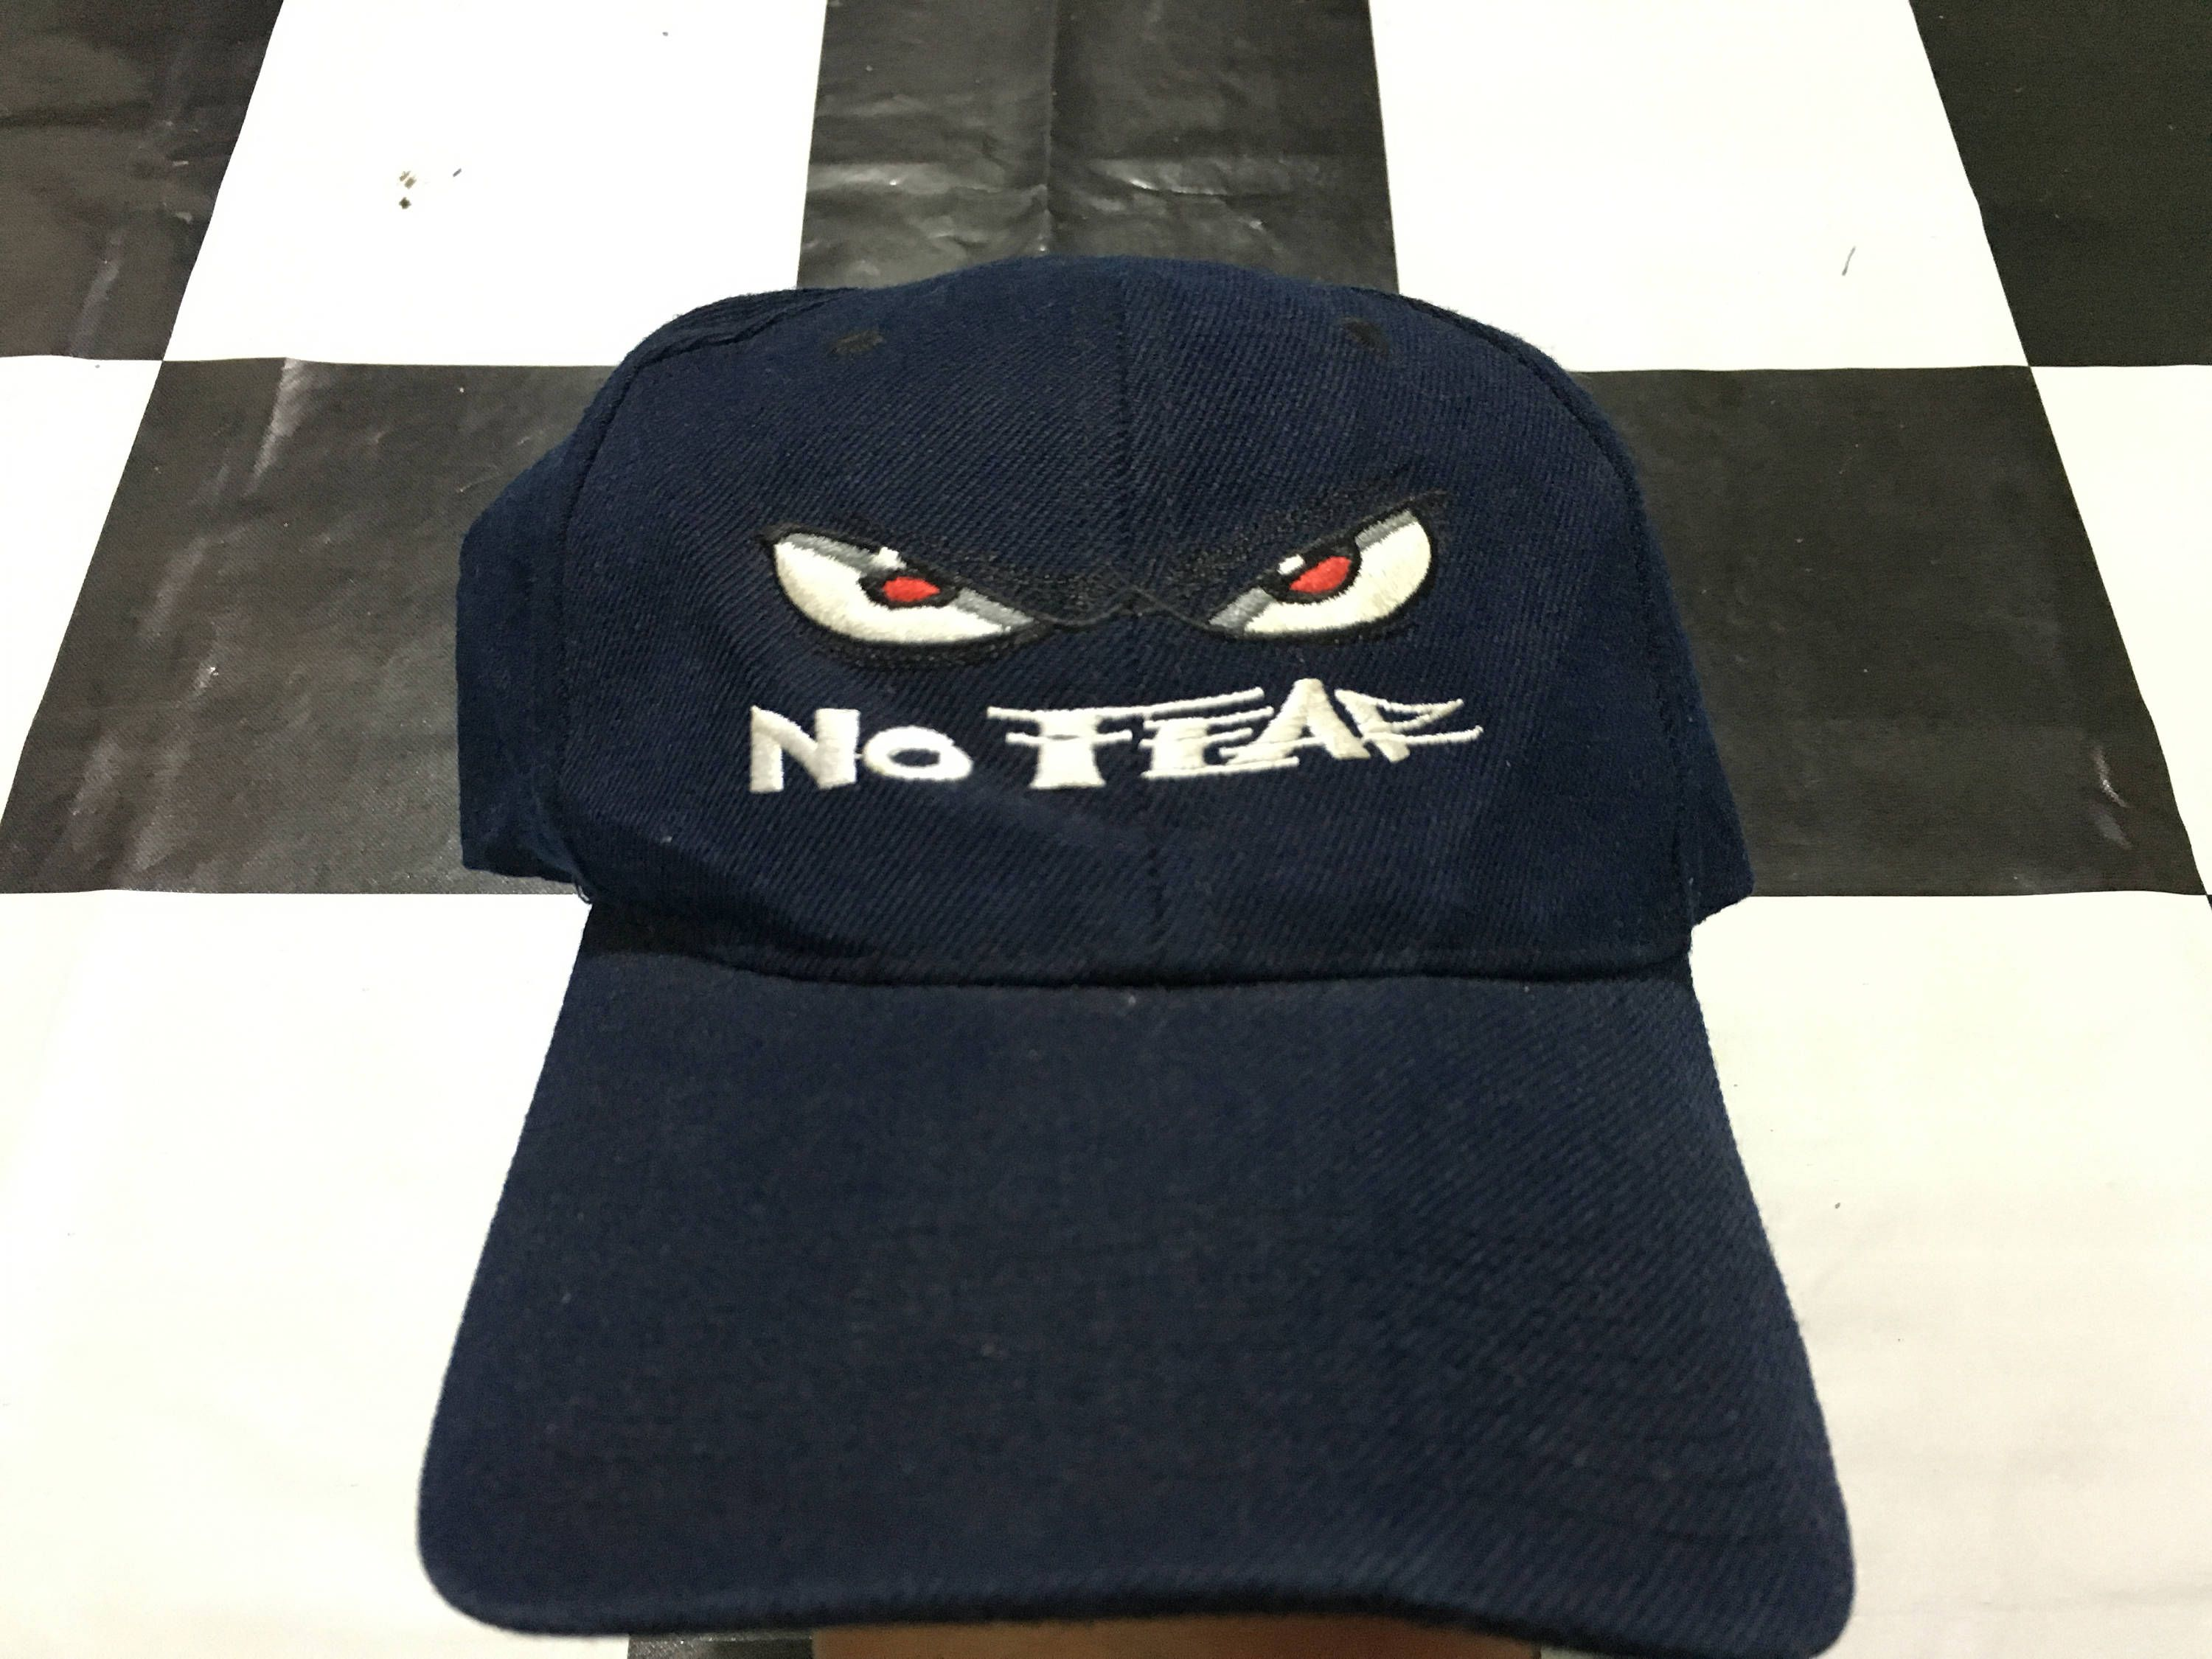 7d80a680331 Vintage No Fear cap embroidered logo strapback cap Good condition by  AlivevintageShop on Etsy